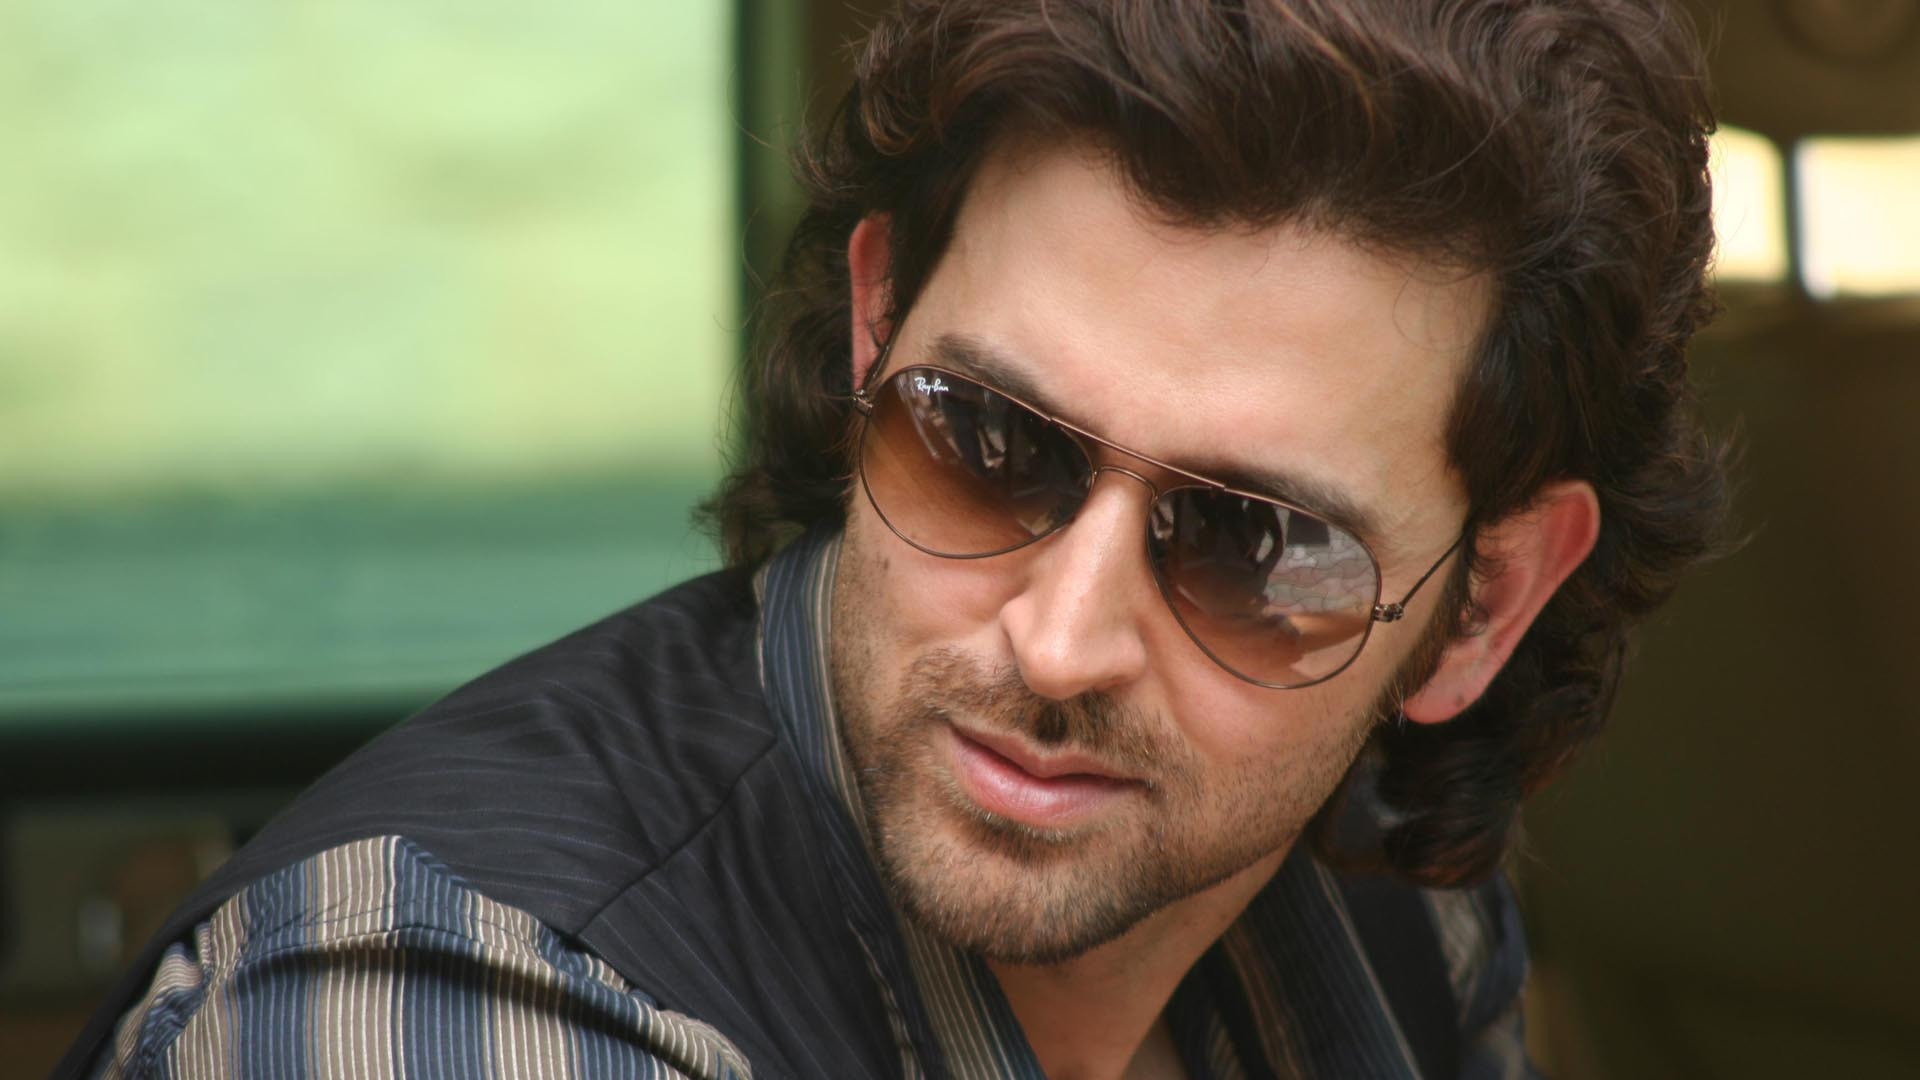 50 hrithik roshan images photos pics hd wallpapers download